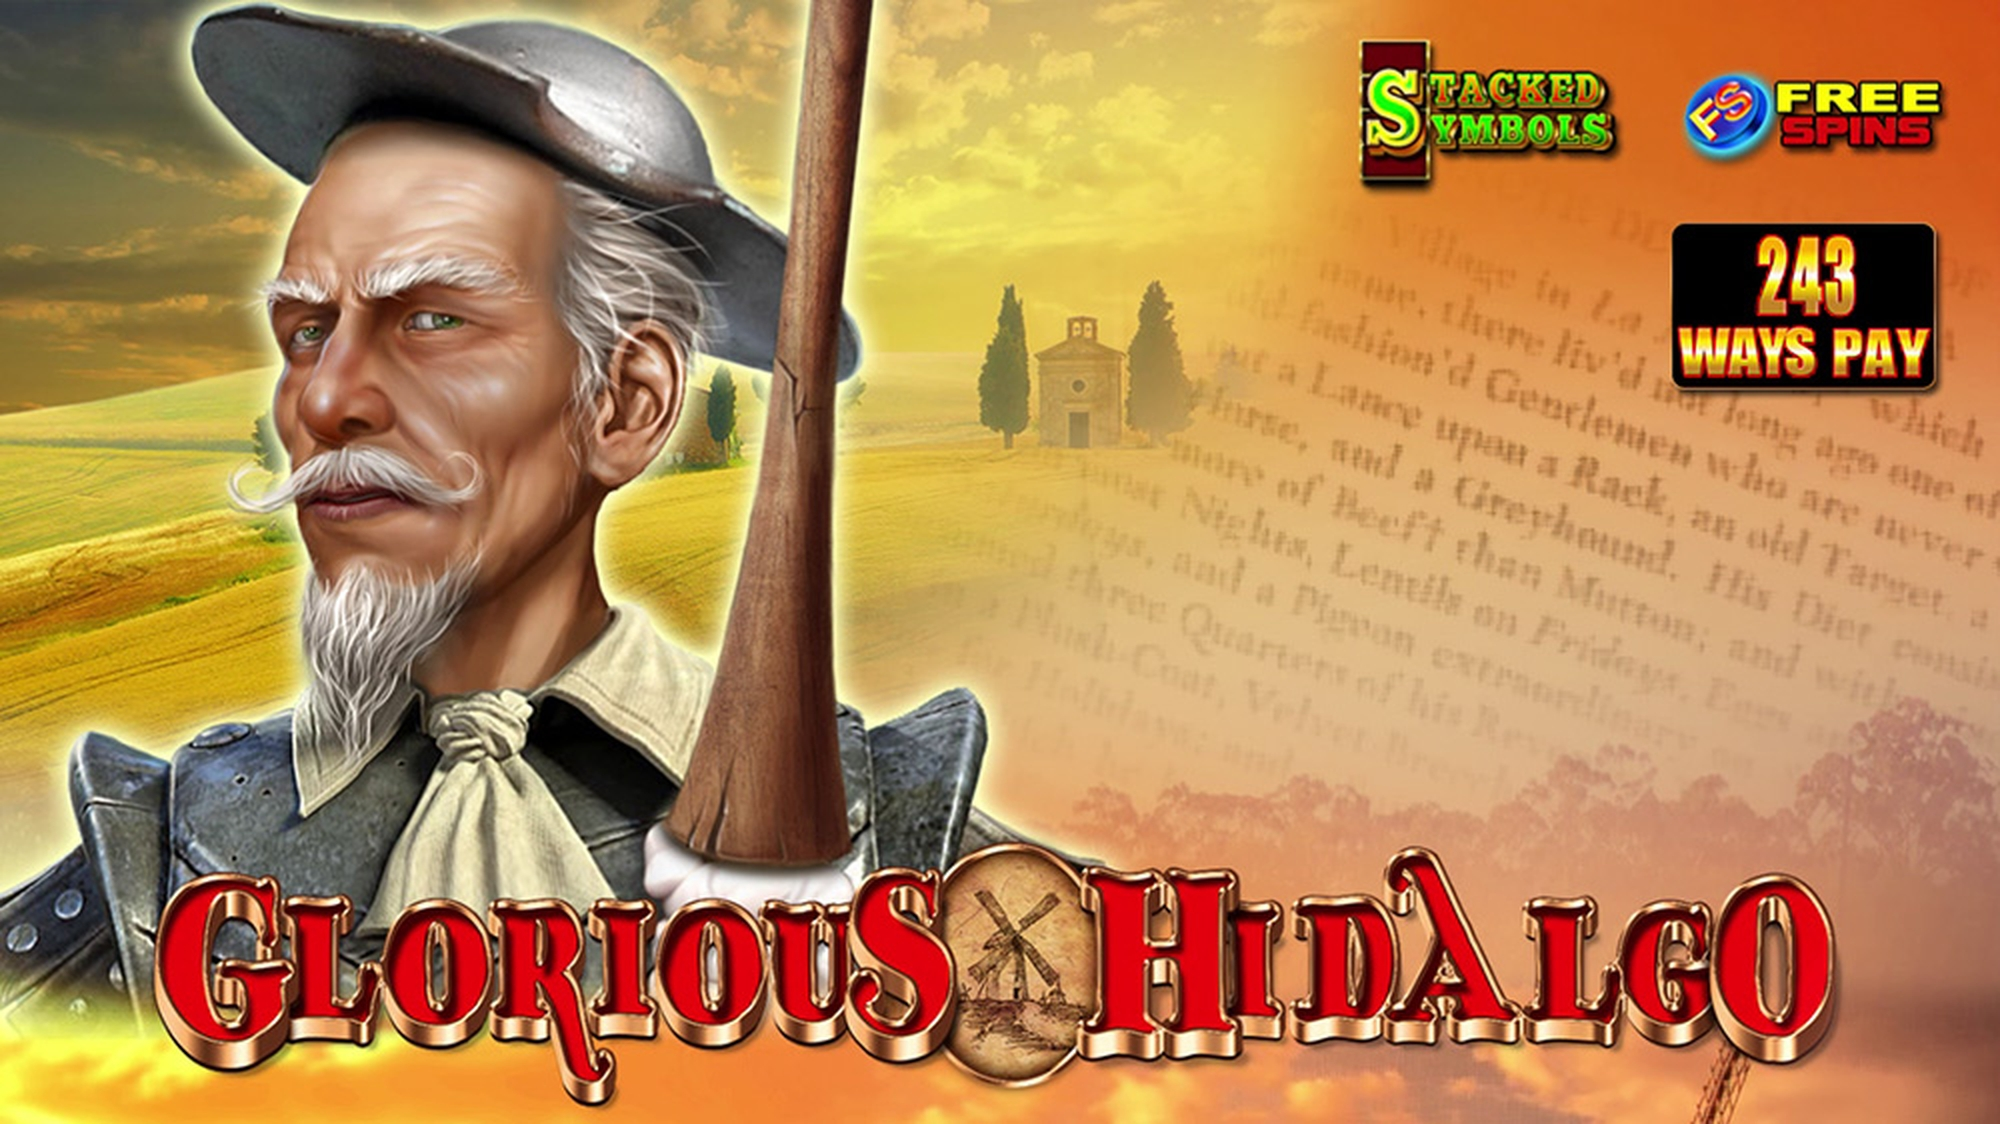 The Glorious Hidalgo Online Slot Demo Game by EGT